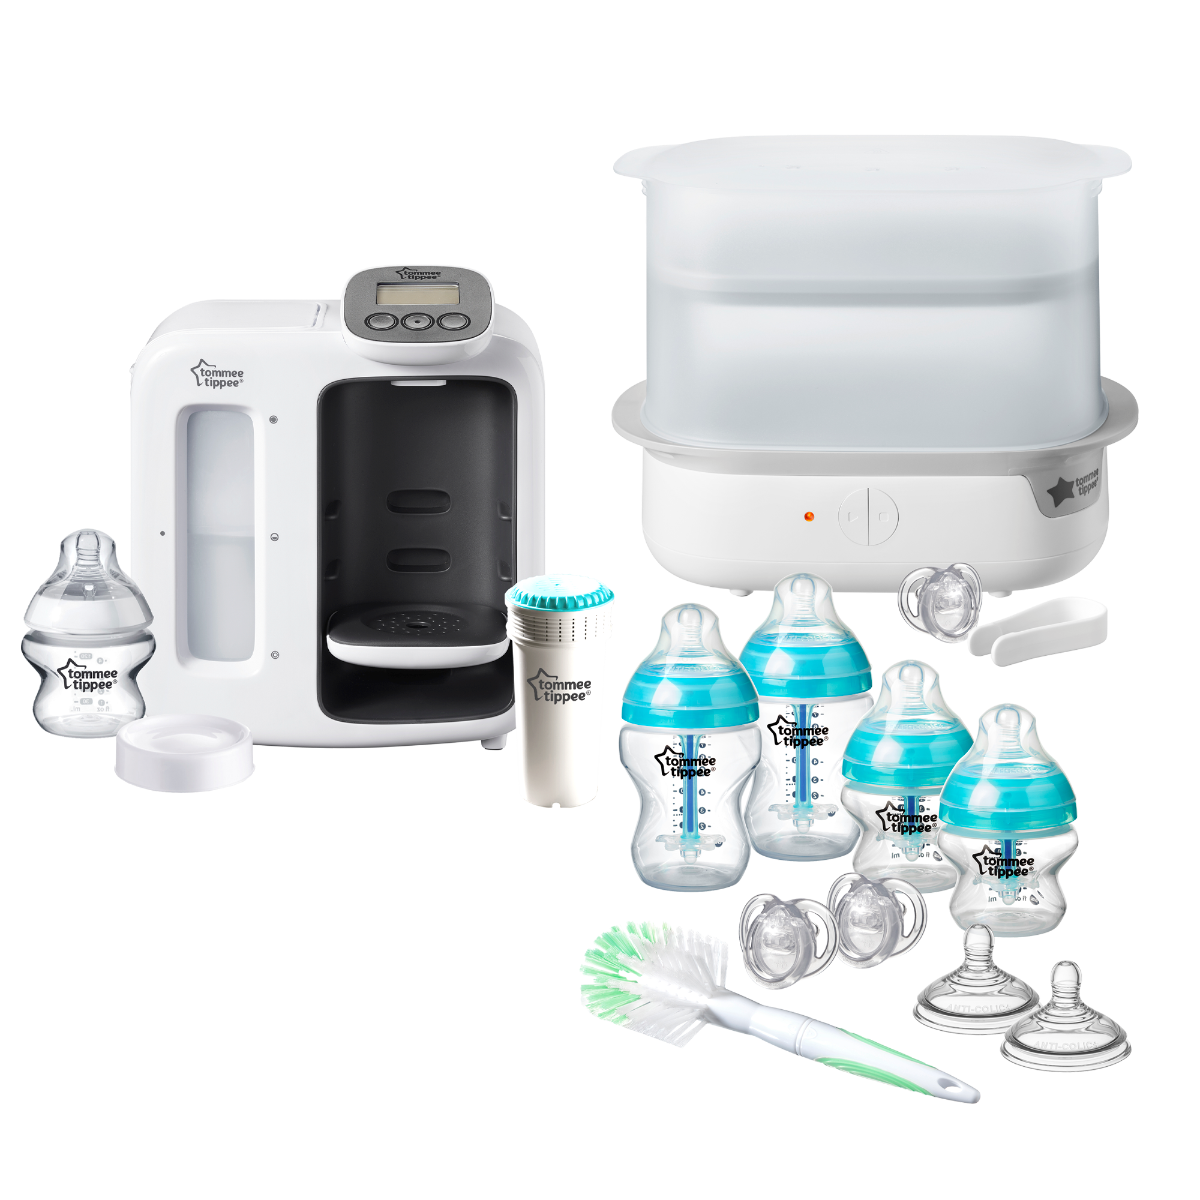 perfect-prep-day-and-night-in-white-with-white-electric-steriliser-and-Advanced-Anti-Colic-Bottle-Starter-Set